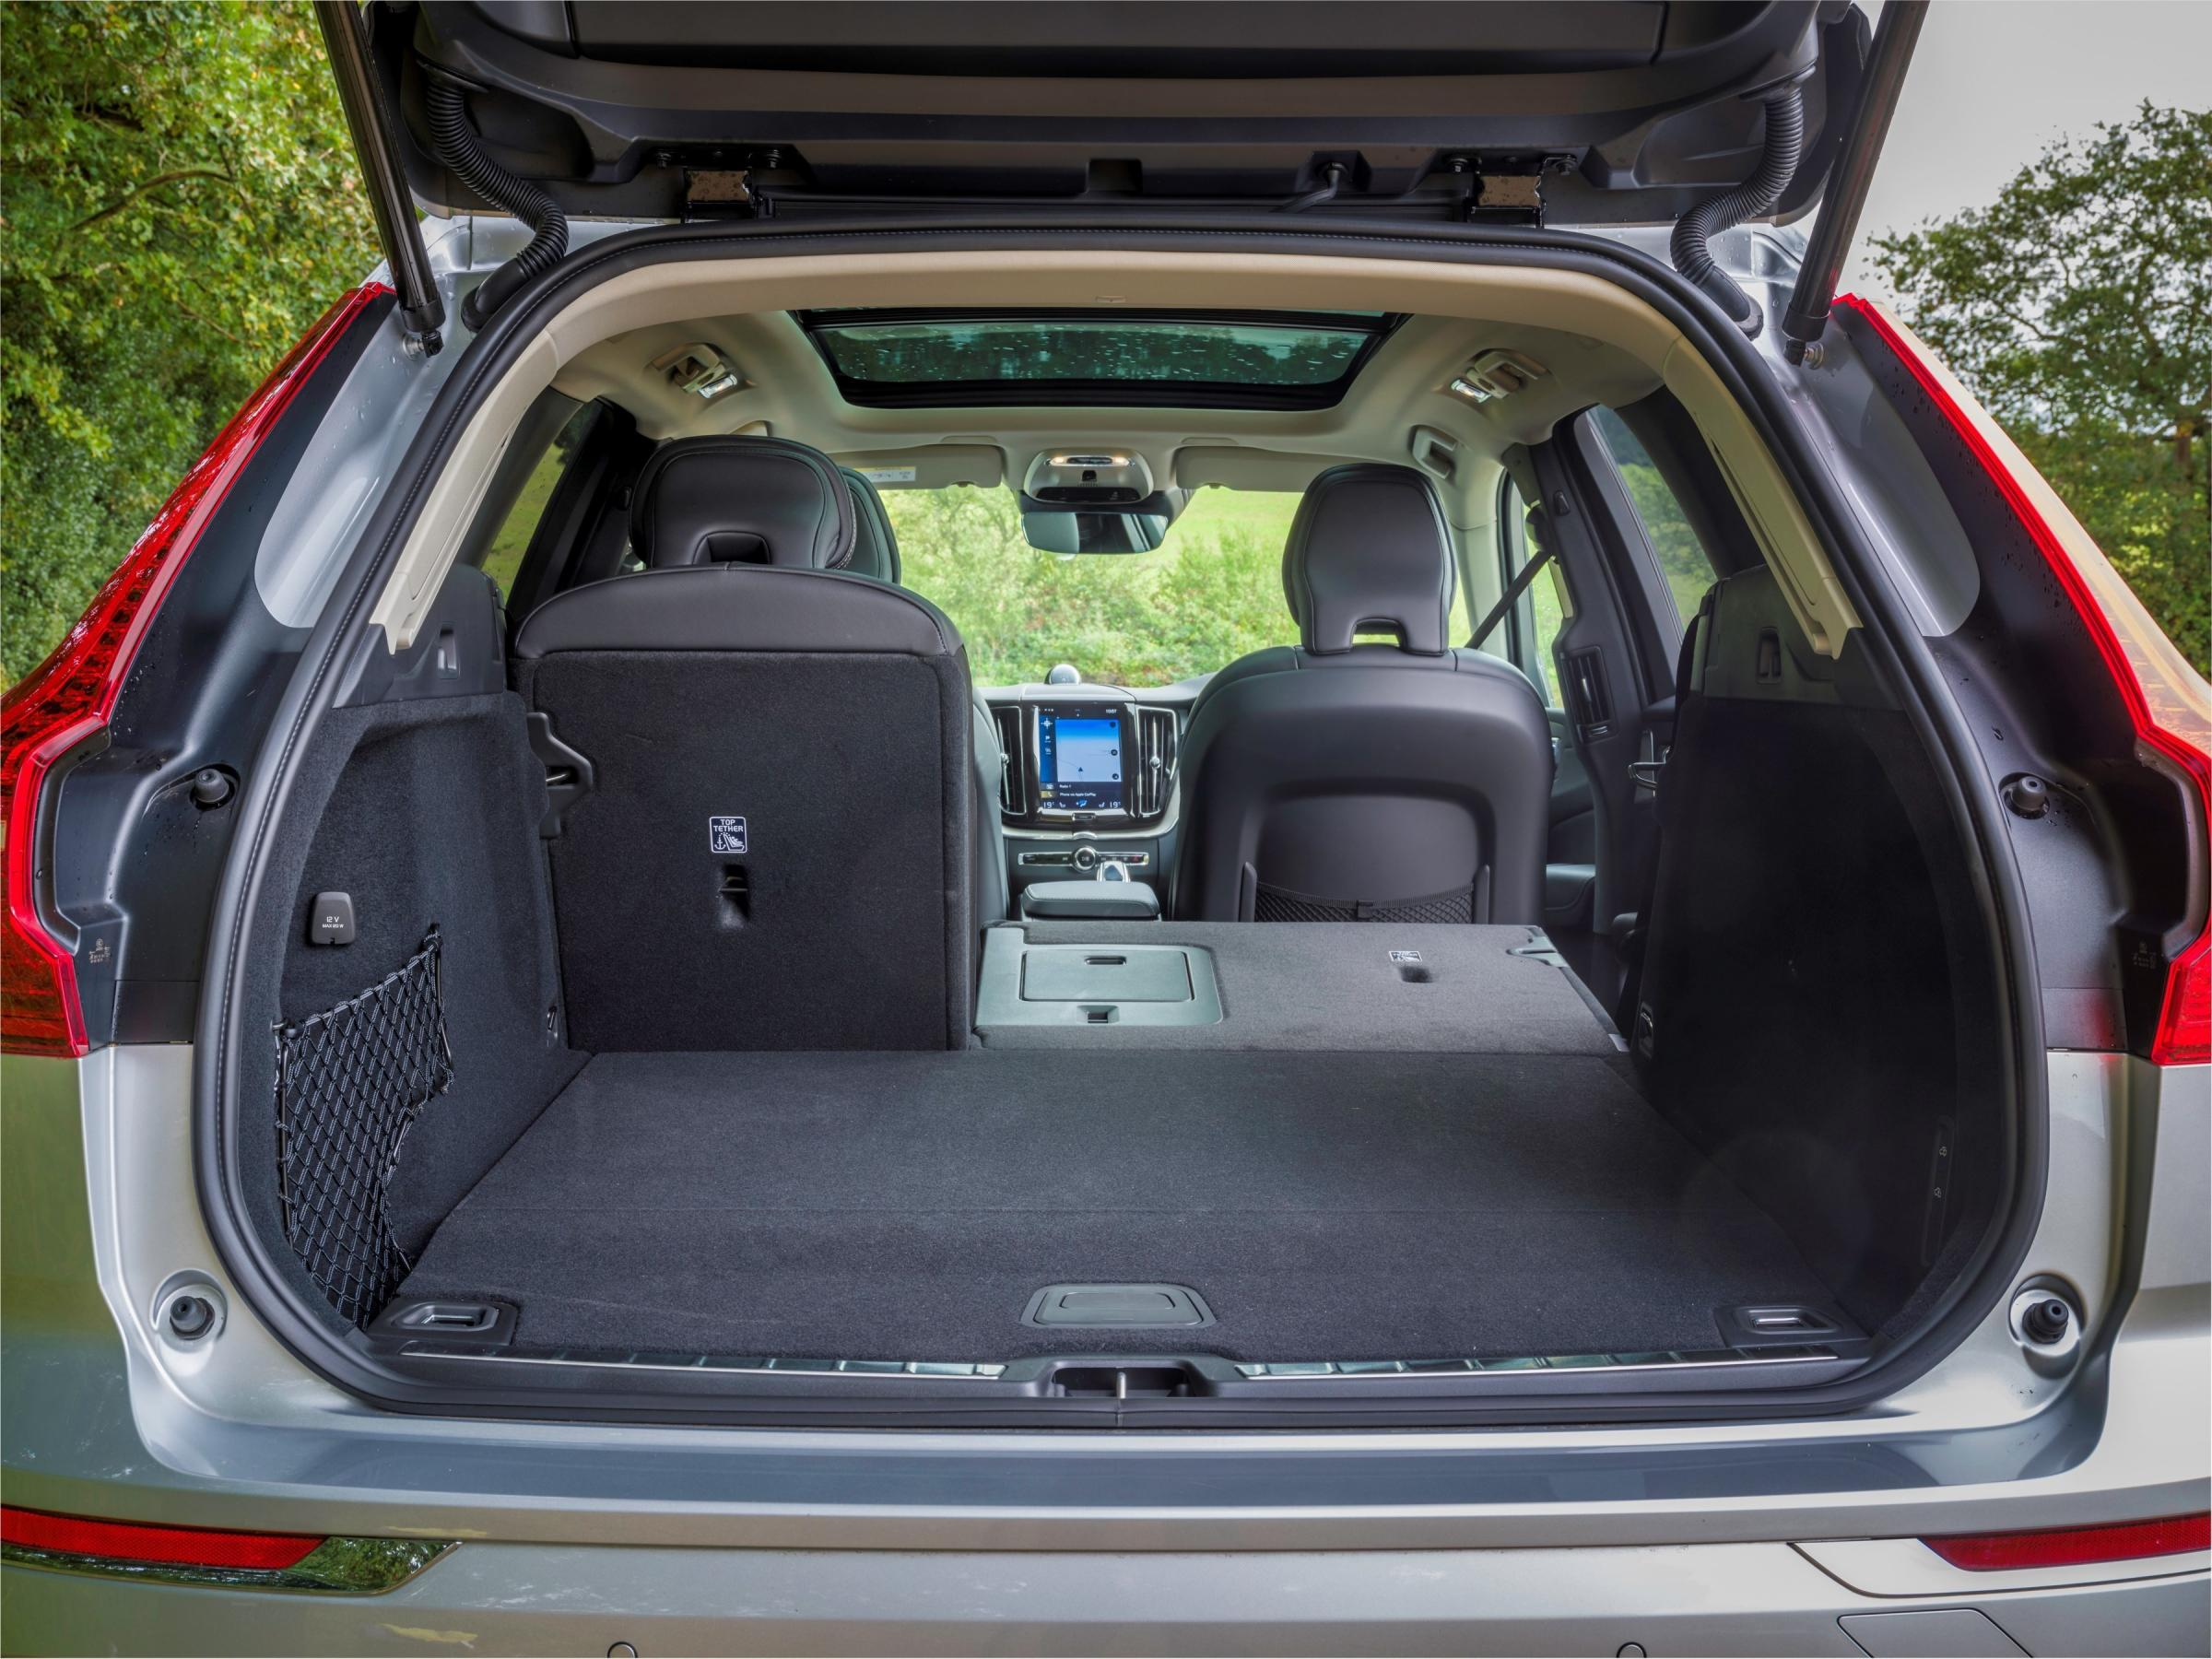 The rear luggage area in the Volvo XC60 can swallow a lot of gear, especially when the split-fold rear seats are deployed